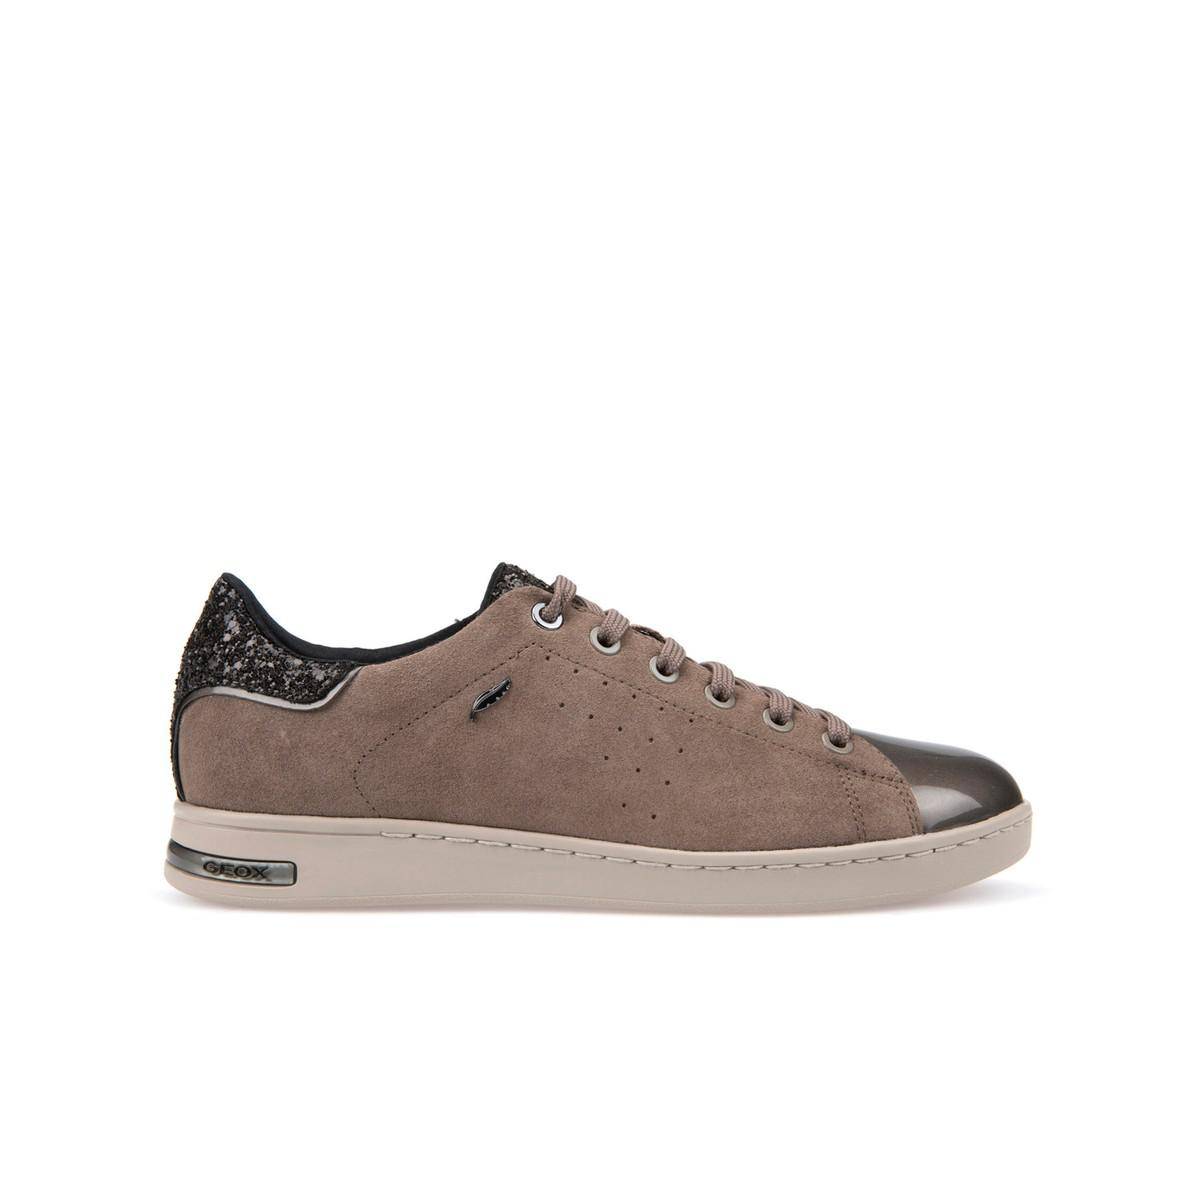 Lyst - Geox Jaysen Trainers in Brown 7cd9c3e17a4